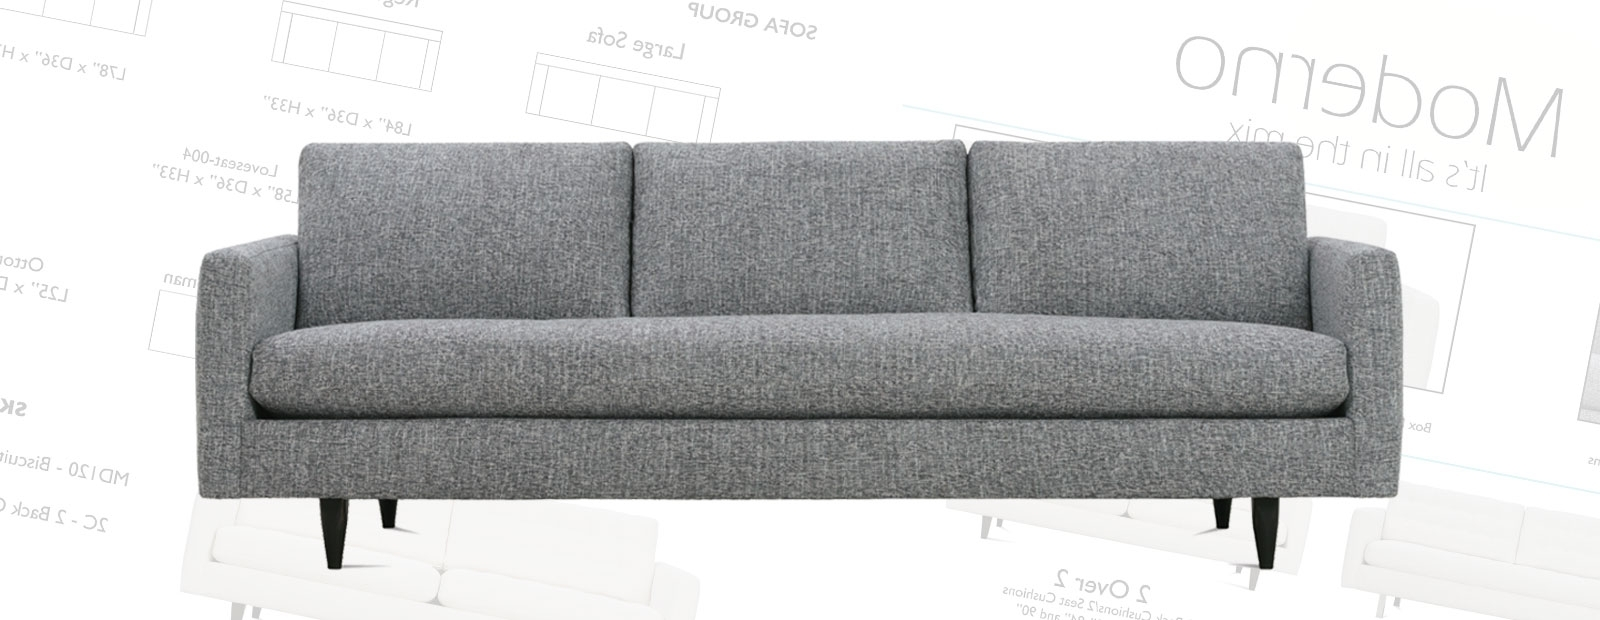 Most Recently Released Moderno Seating Within Mobilia Sectional Sofas (View 10 of 20)